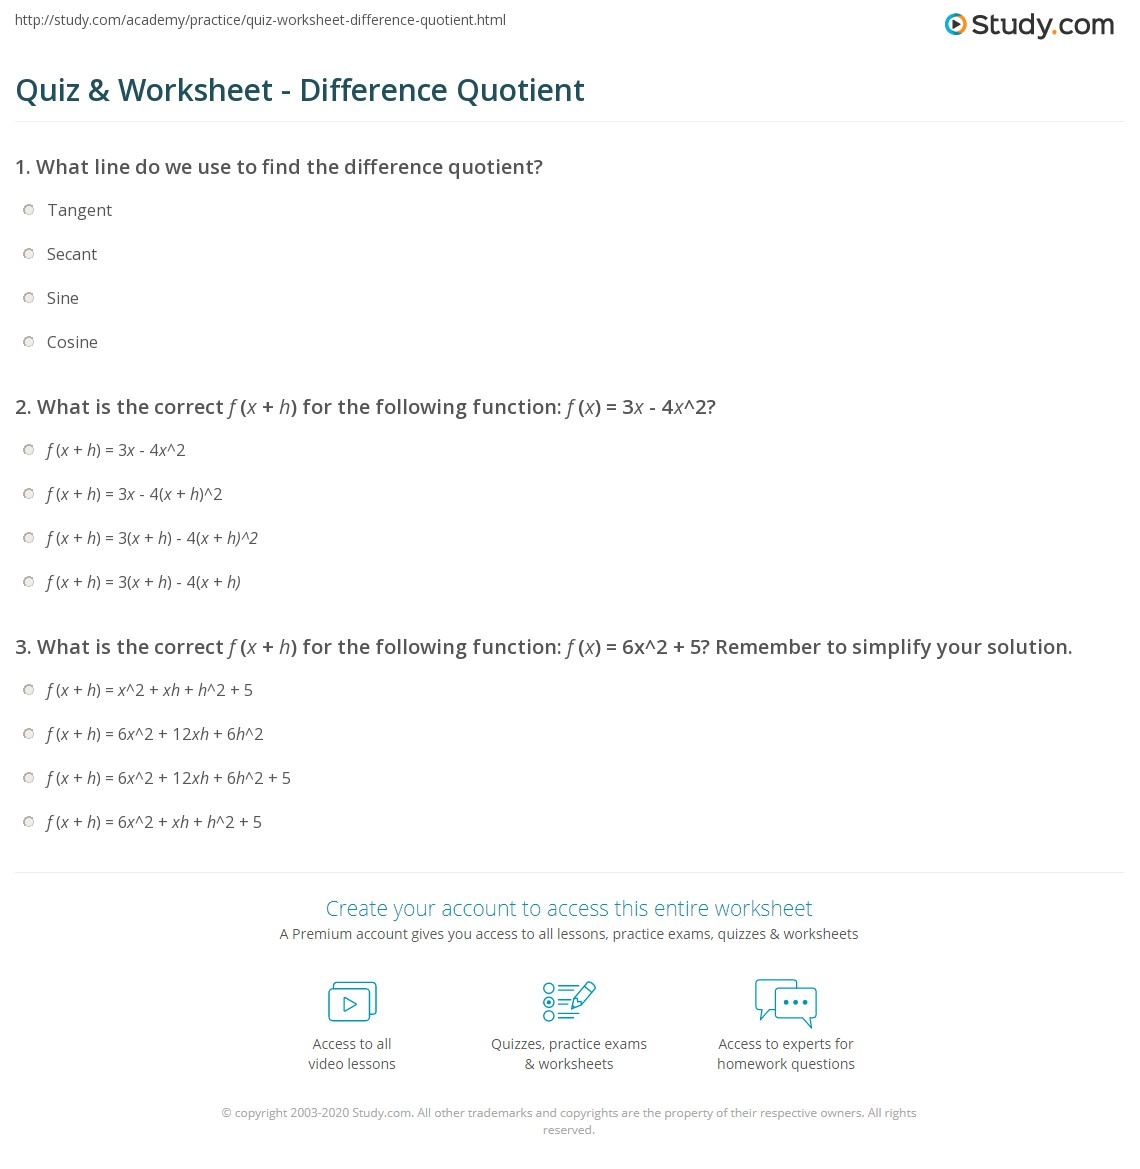 Worksheets Difference Quotient Worksheet quiz worksheet difference quotient study com print definition formula examples worksheet